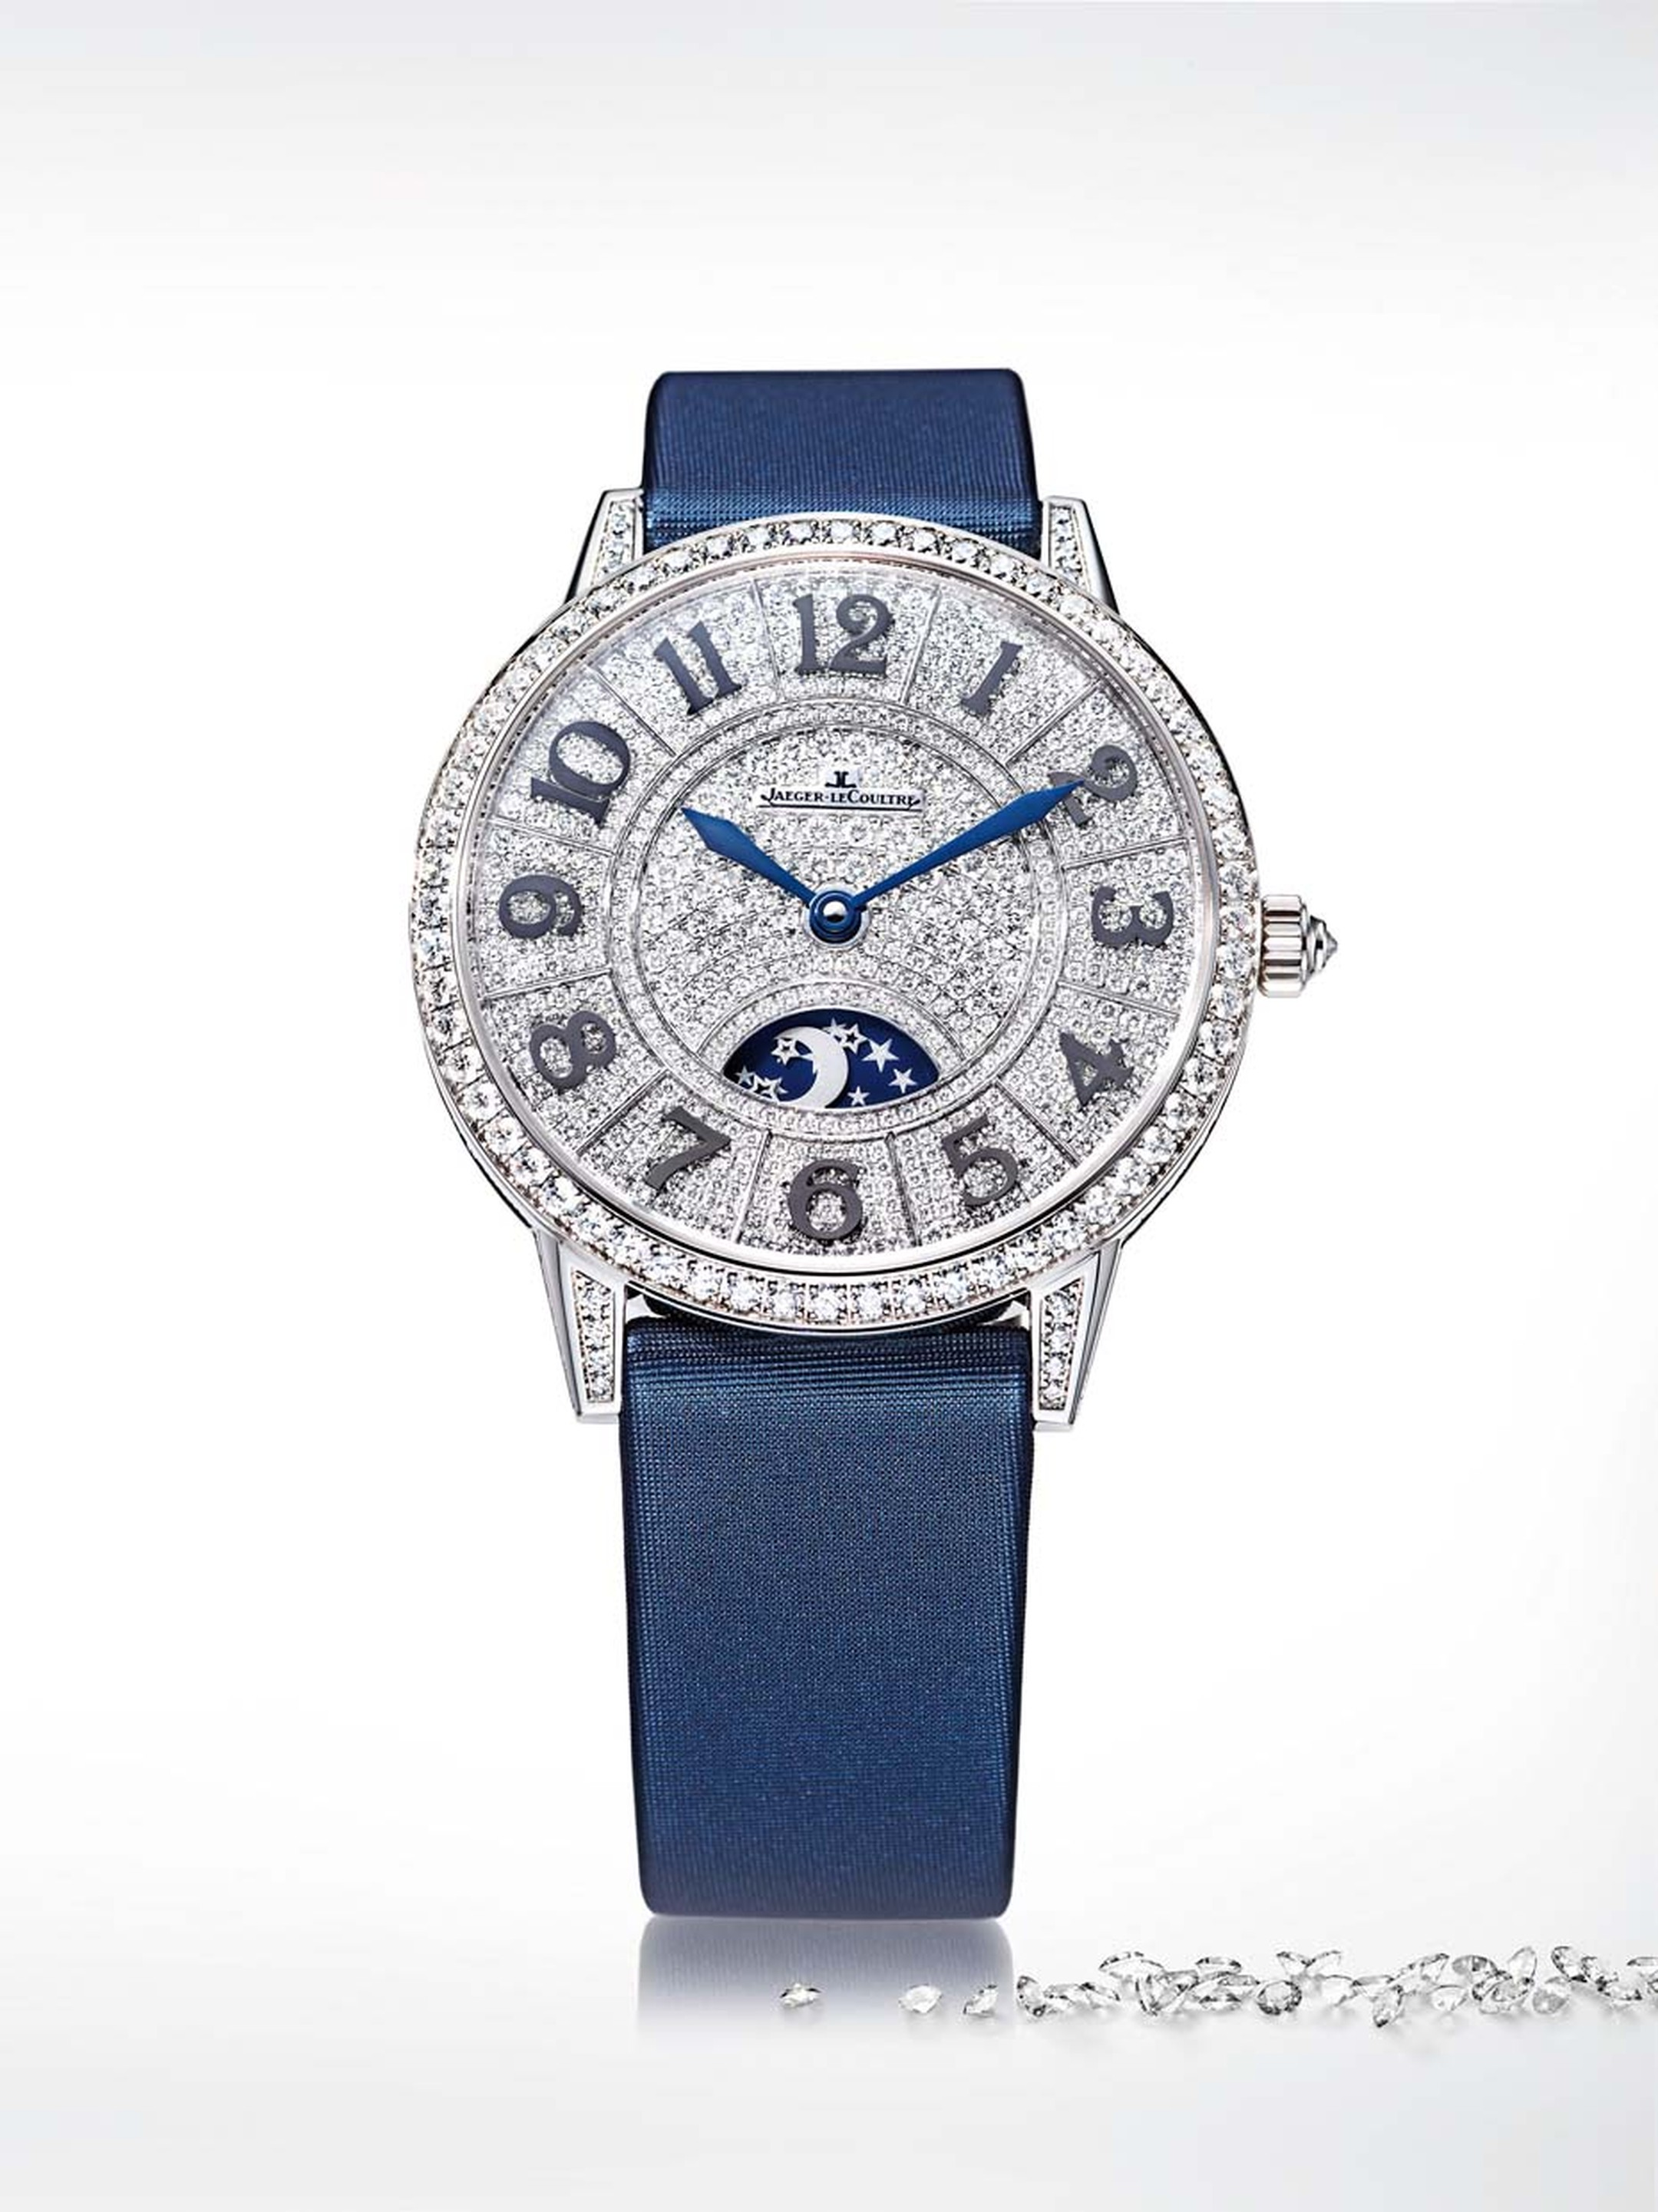 Jaeger-LeCoultre Rendez-Vous Night and Day watch with a bezel, case and lugs completely adorned in diamonds.